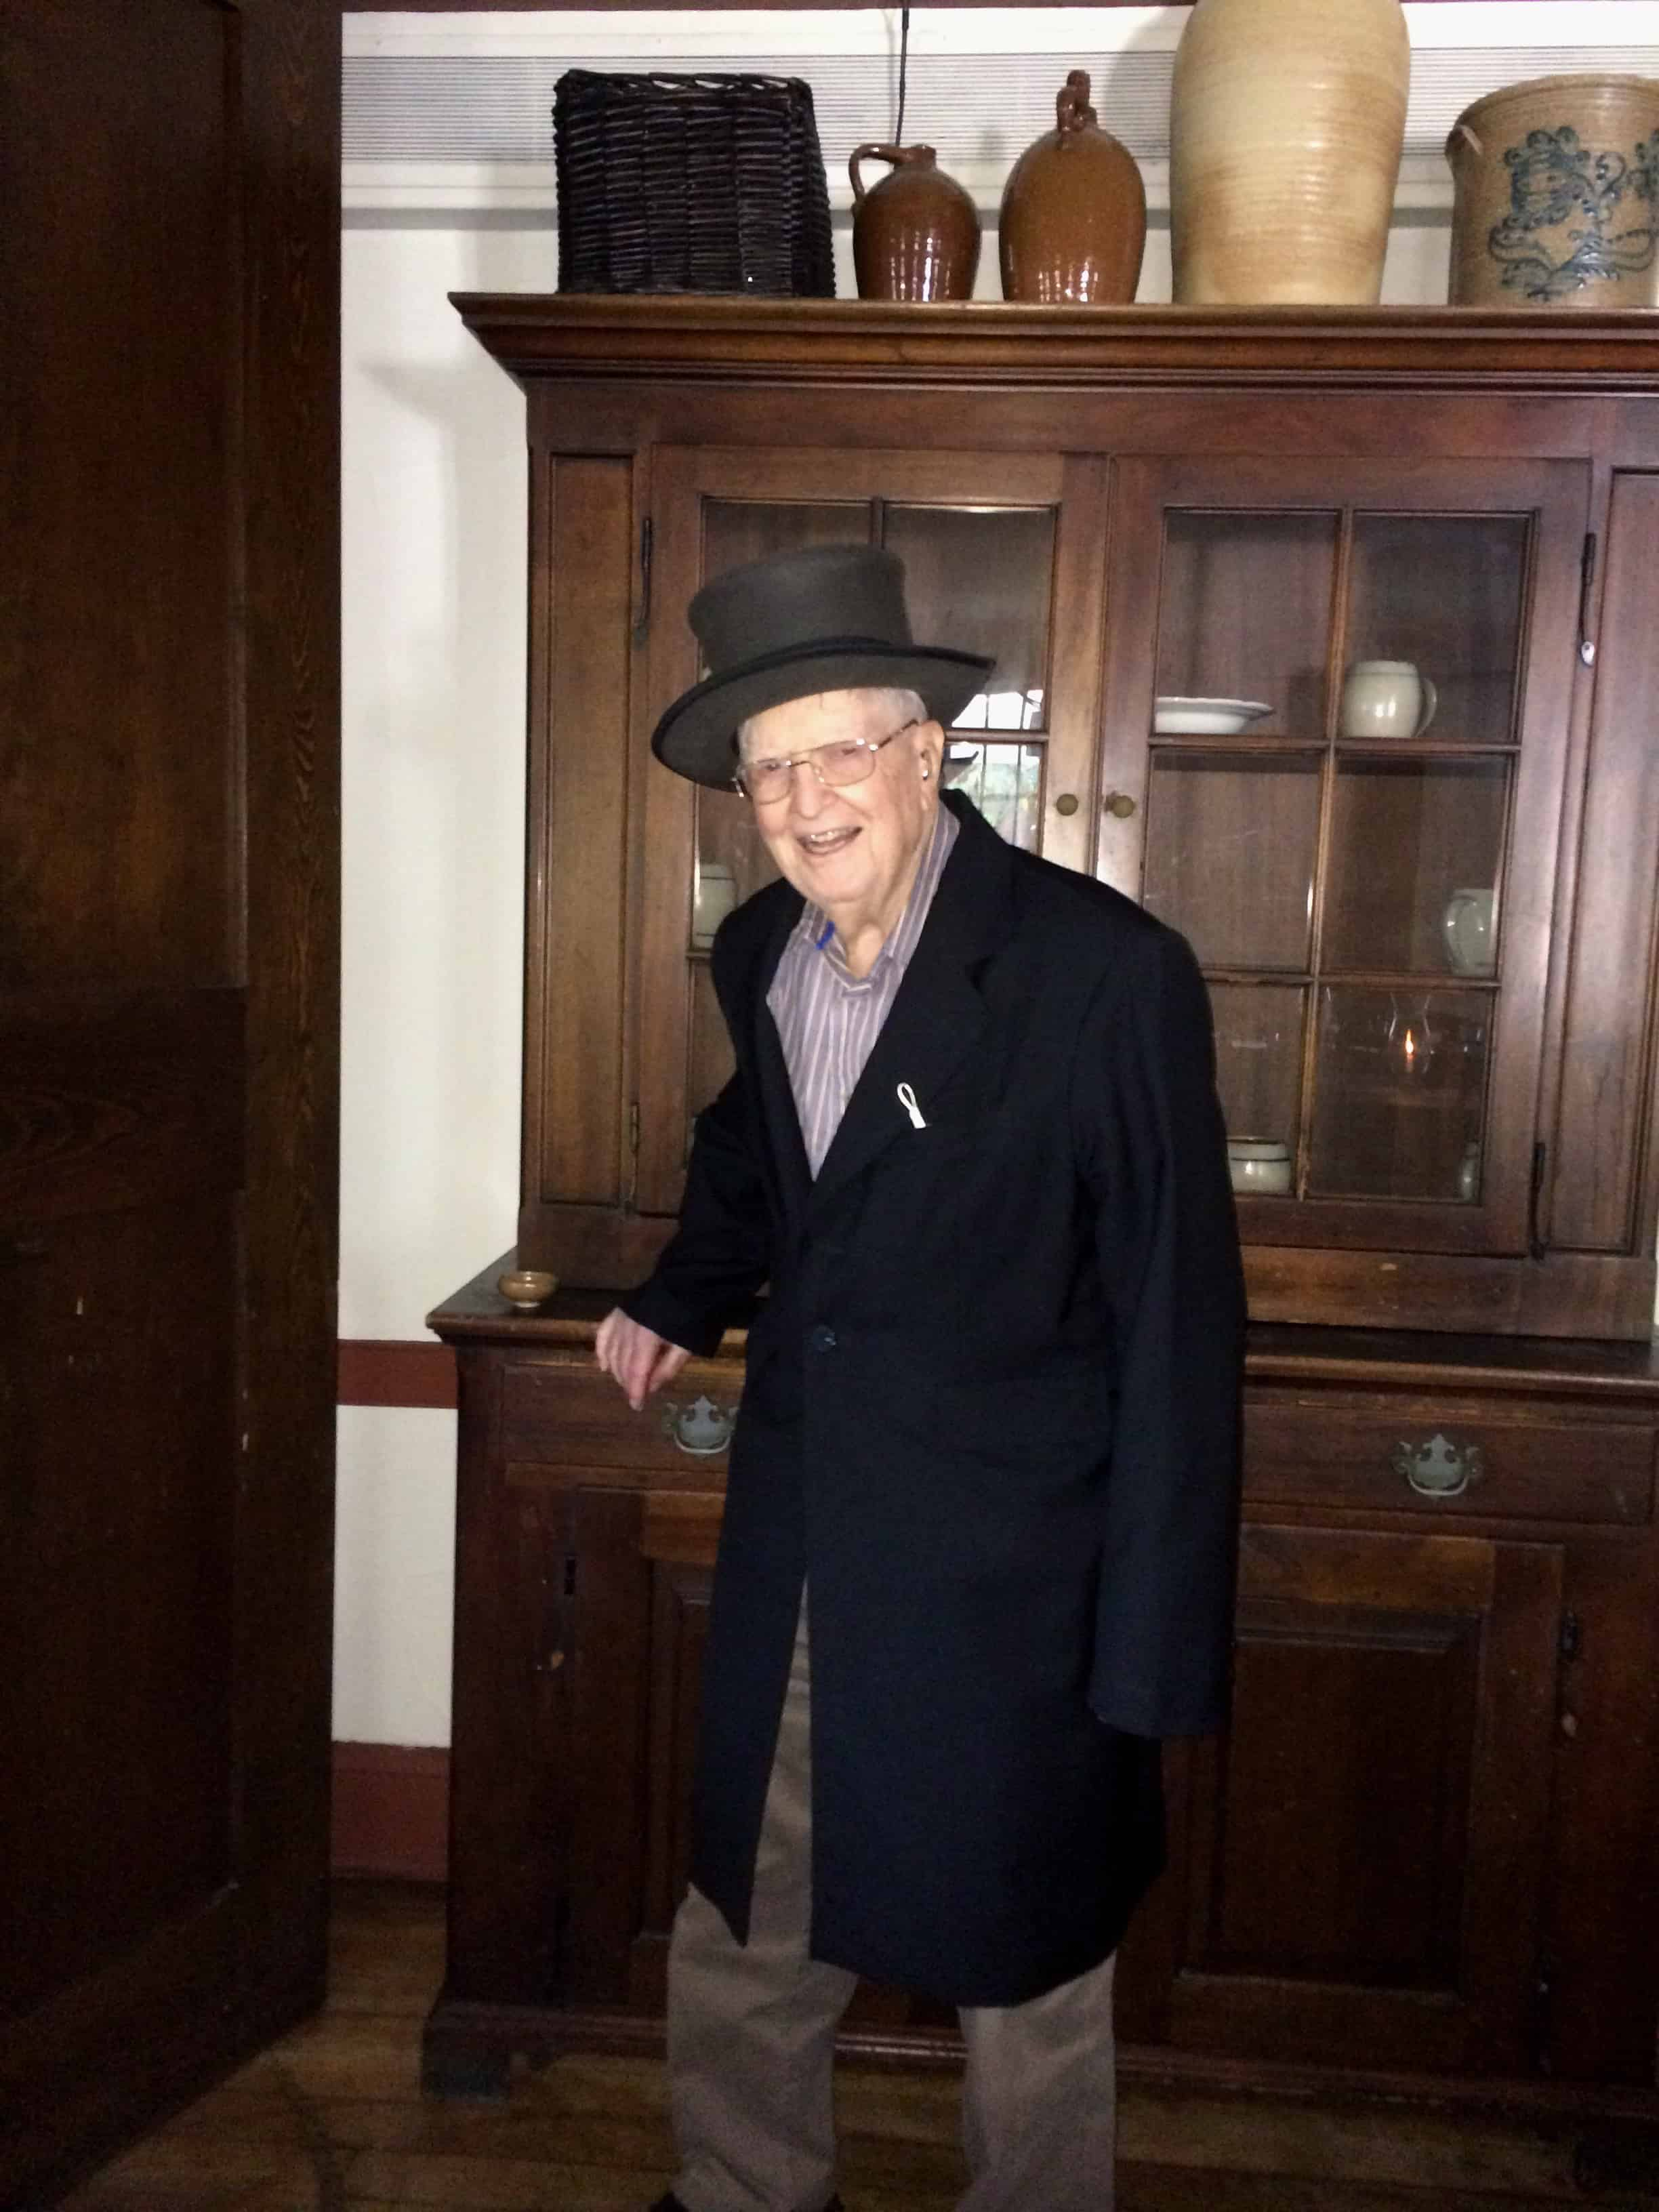 Dad isn't one to sit. He wandered off and borrowed a hat and an overcoat from a peg.